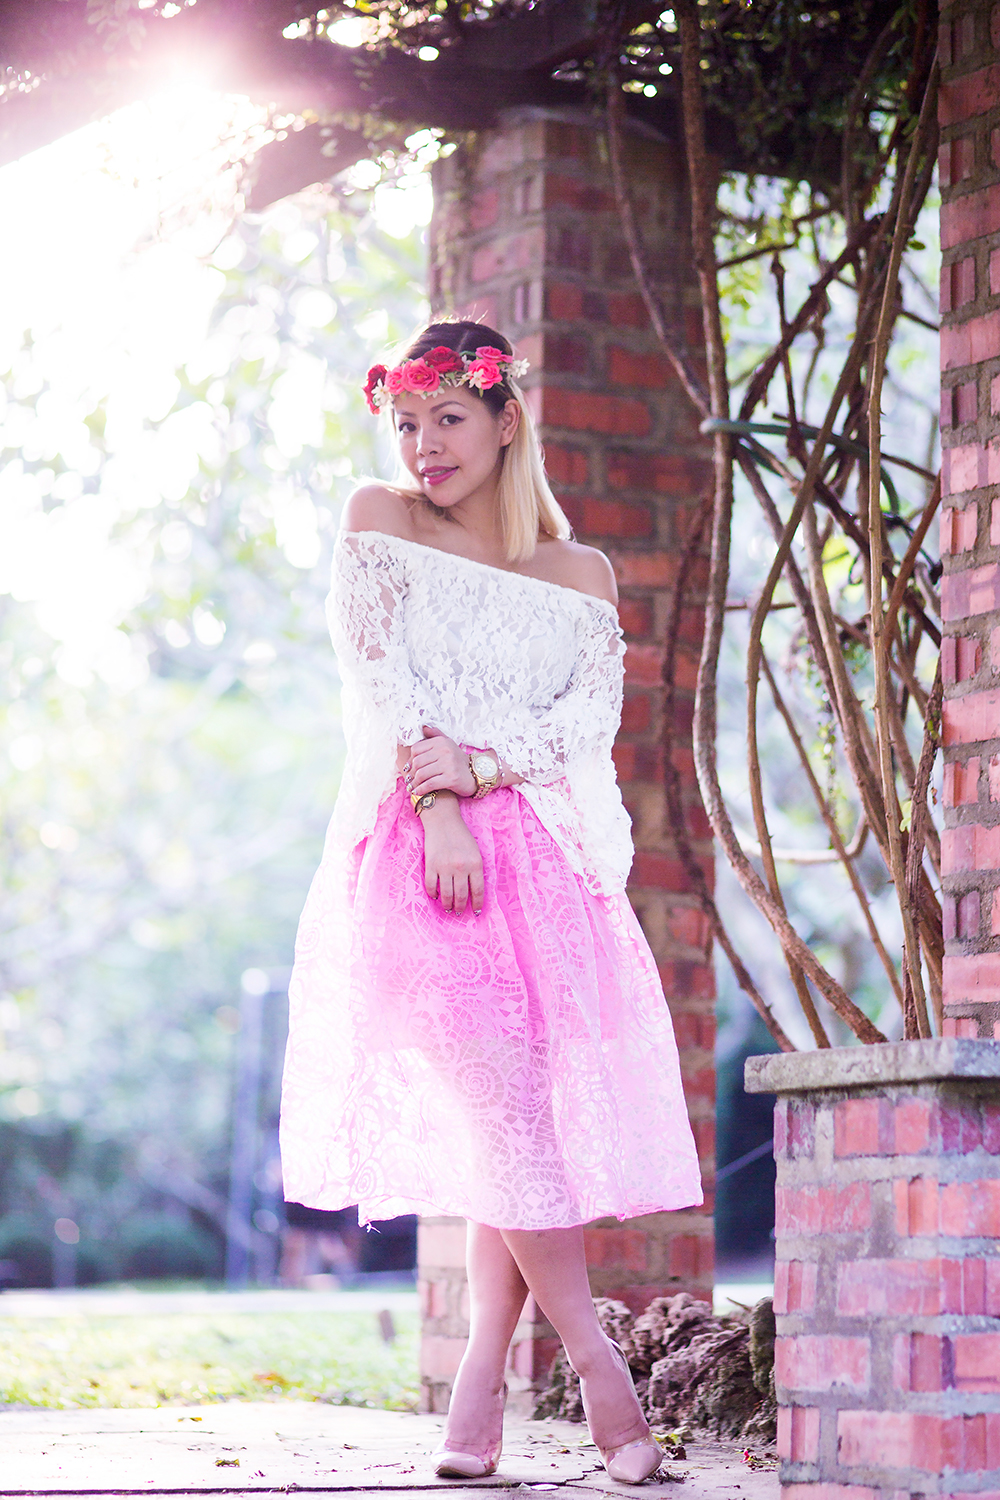 Crystal Phuong- Singapore Fashion Blog- Sweet look with chiffon midi skirt, off shoulder lace top and floral crown